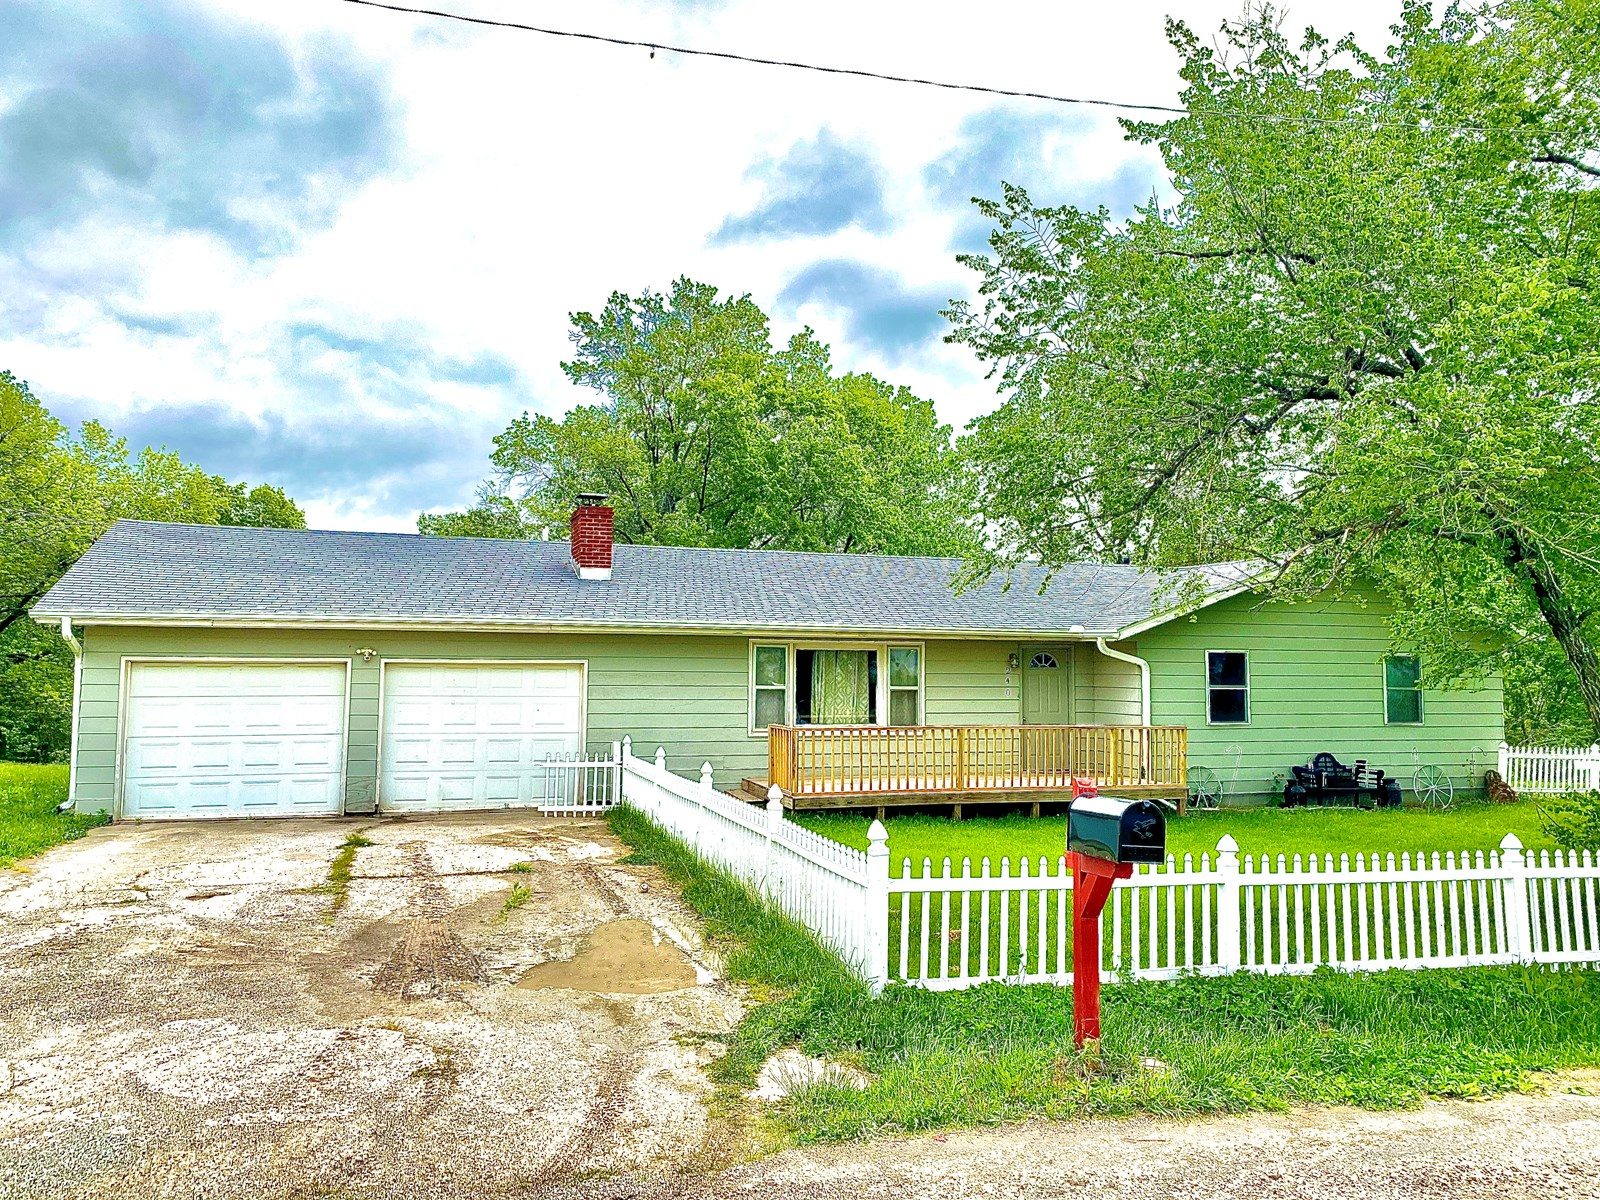 Ranch Home on Small Acreage For Sale in Princeton MO